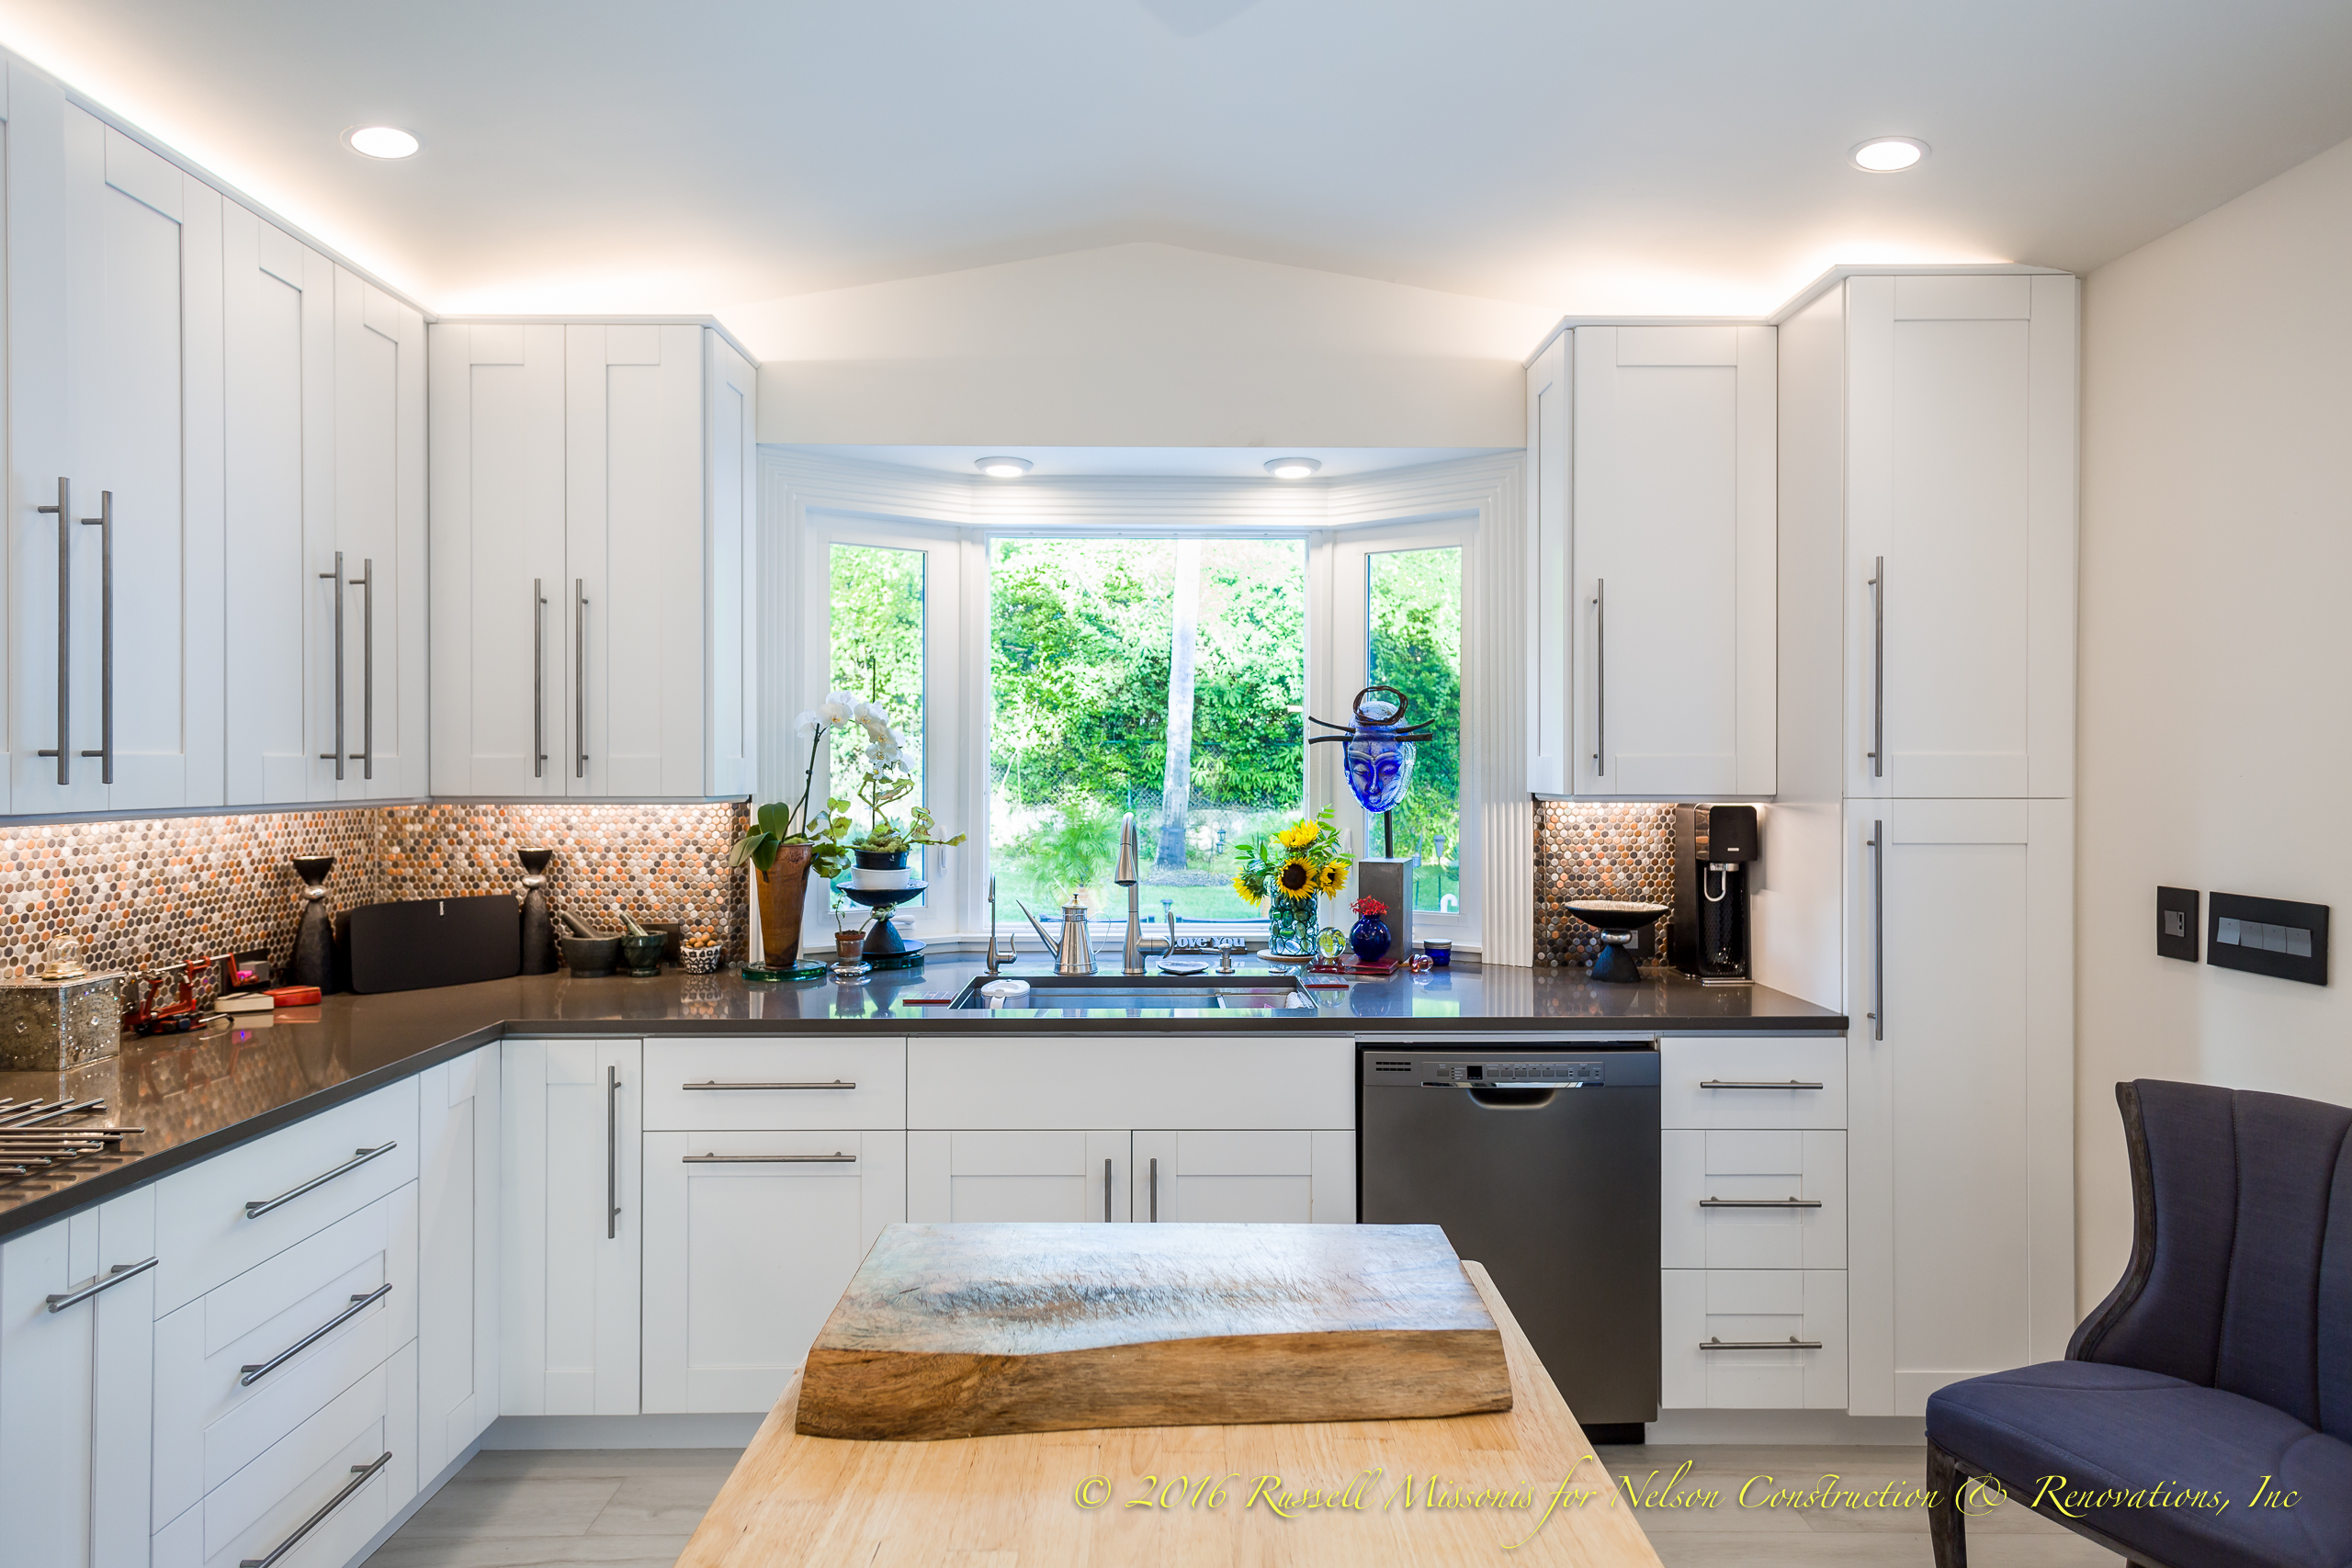 Kitchen Remodel Nelson Construction & Renovations Inc